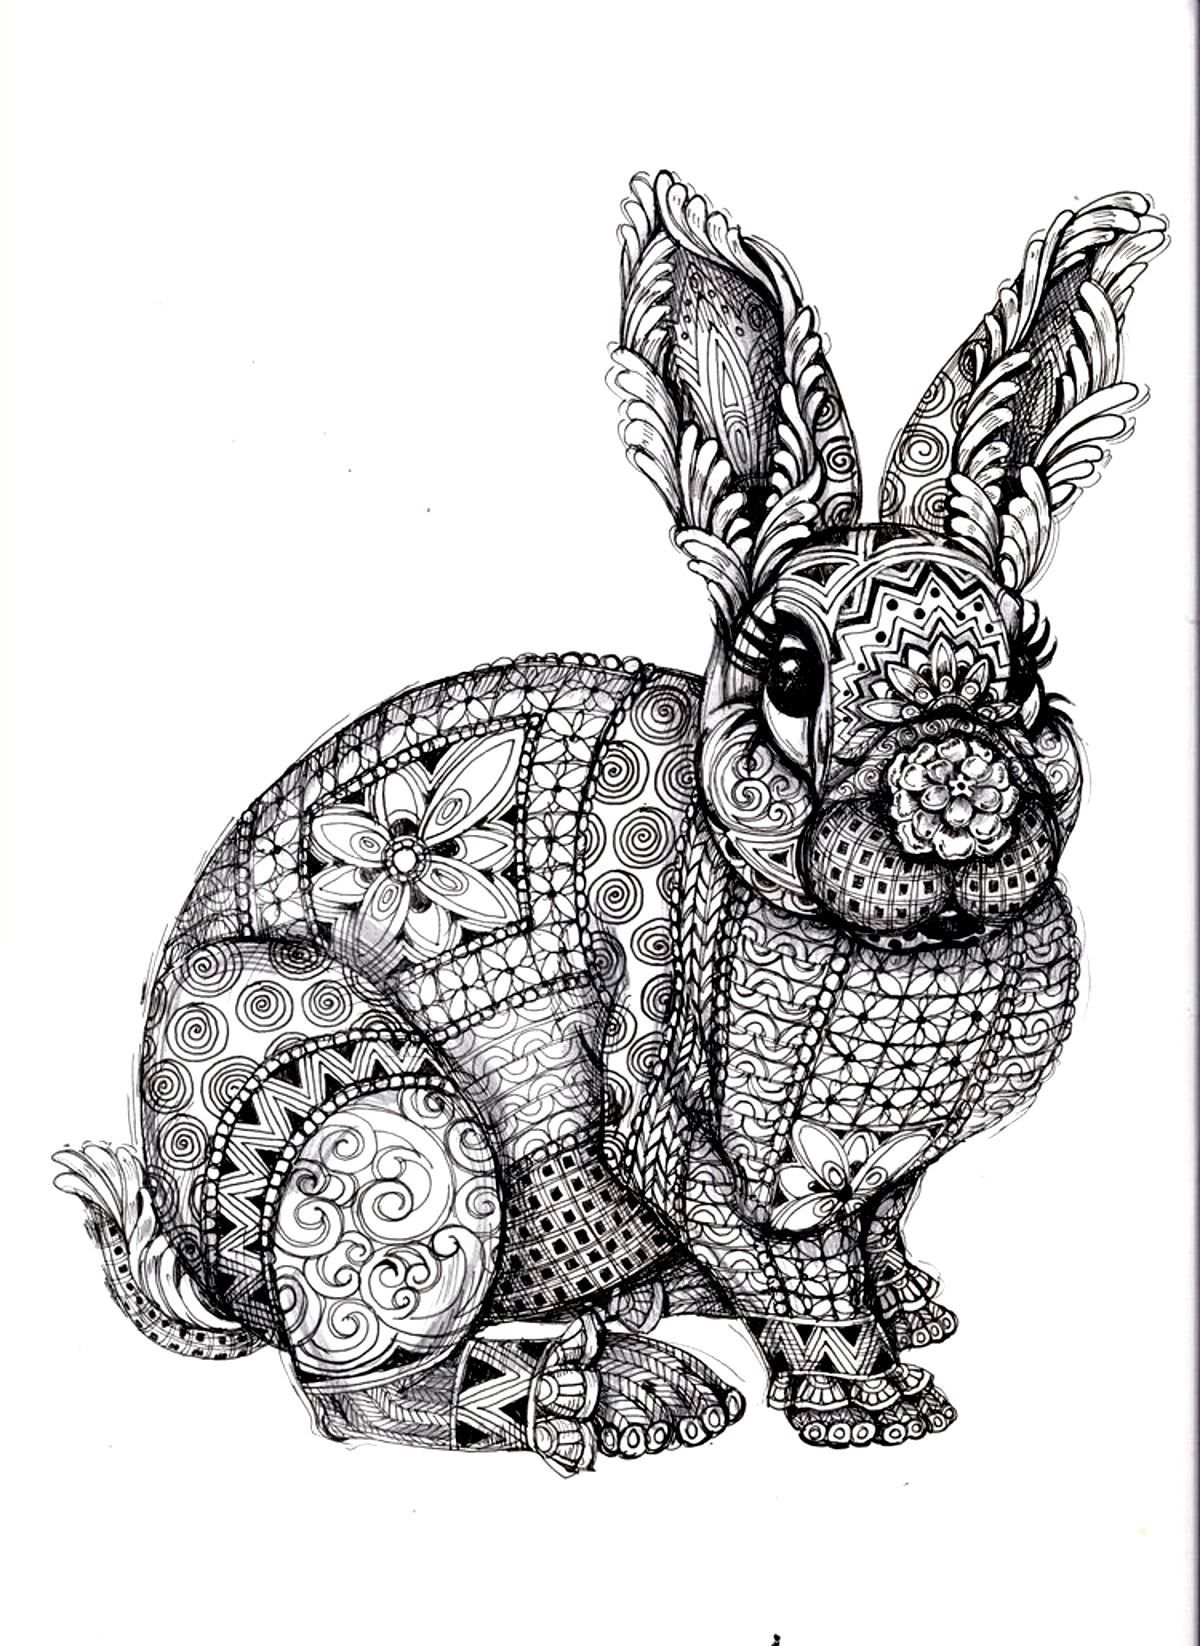 Free printable coloring pages rabbits - Difficult Rabbit Adult Coloring Page Printable Coloring Pages Sheets For Kids Get The Latest Free Difficult Rabbit Adult Coloring Page Images